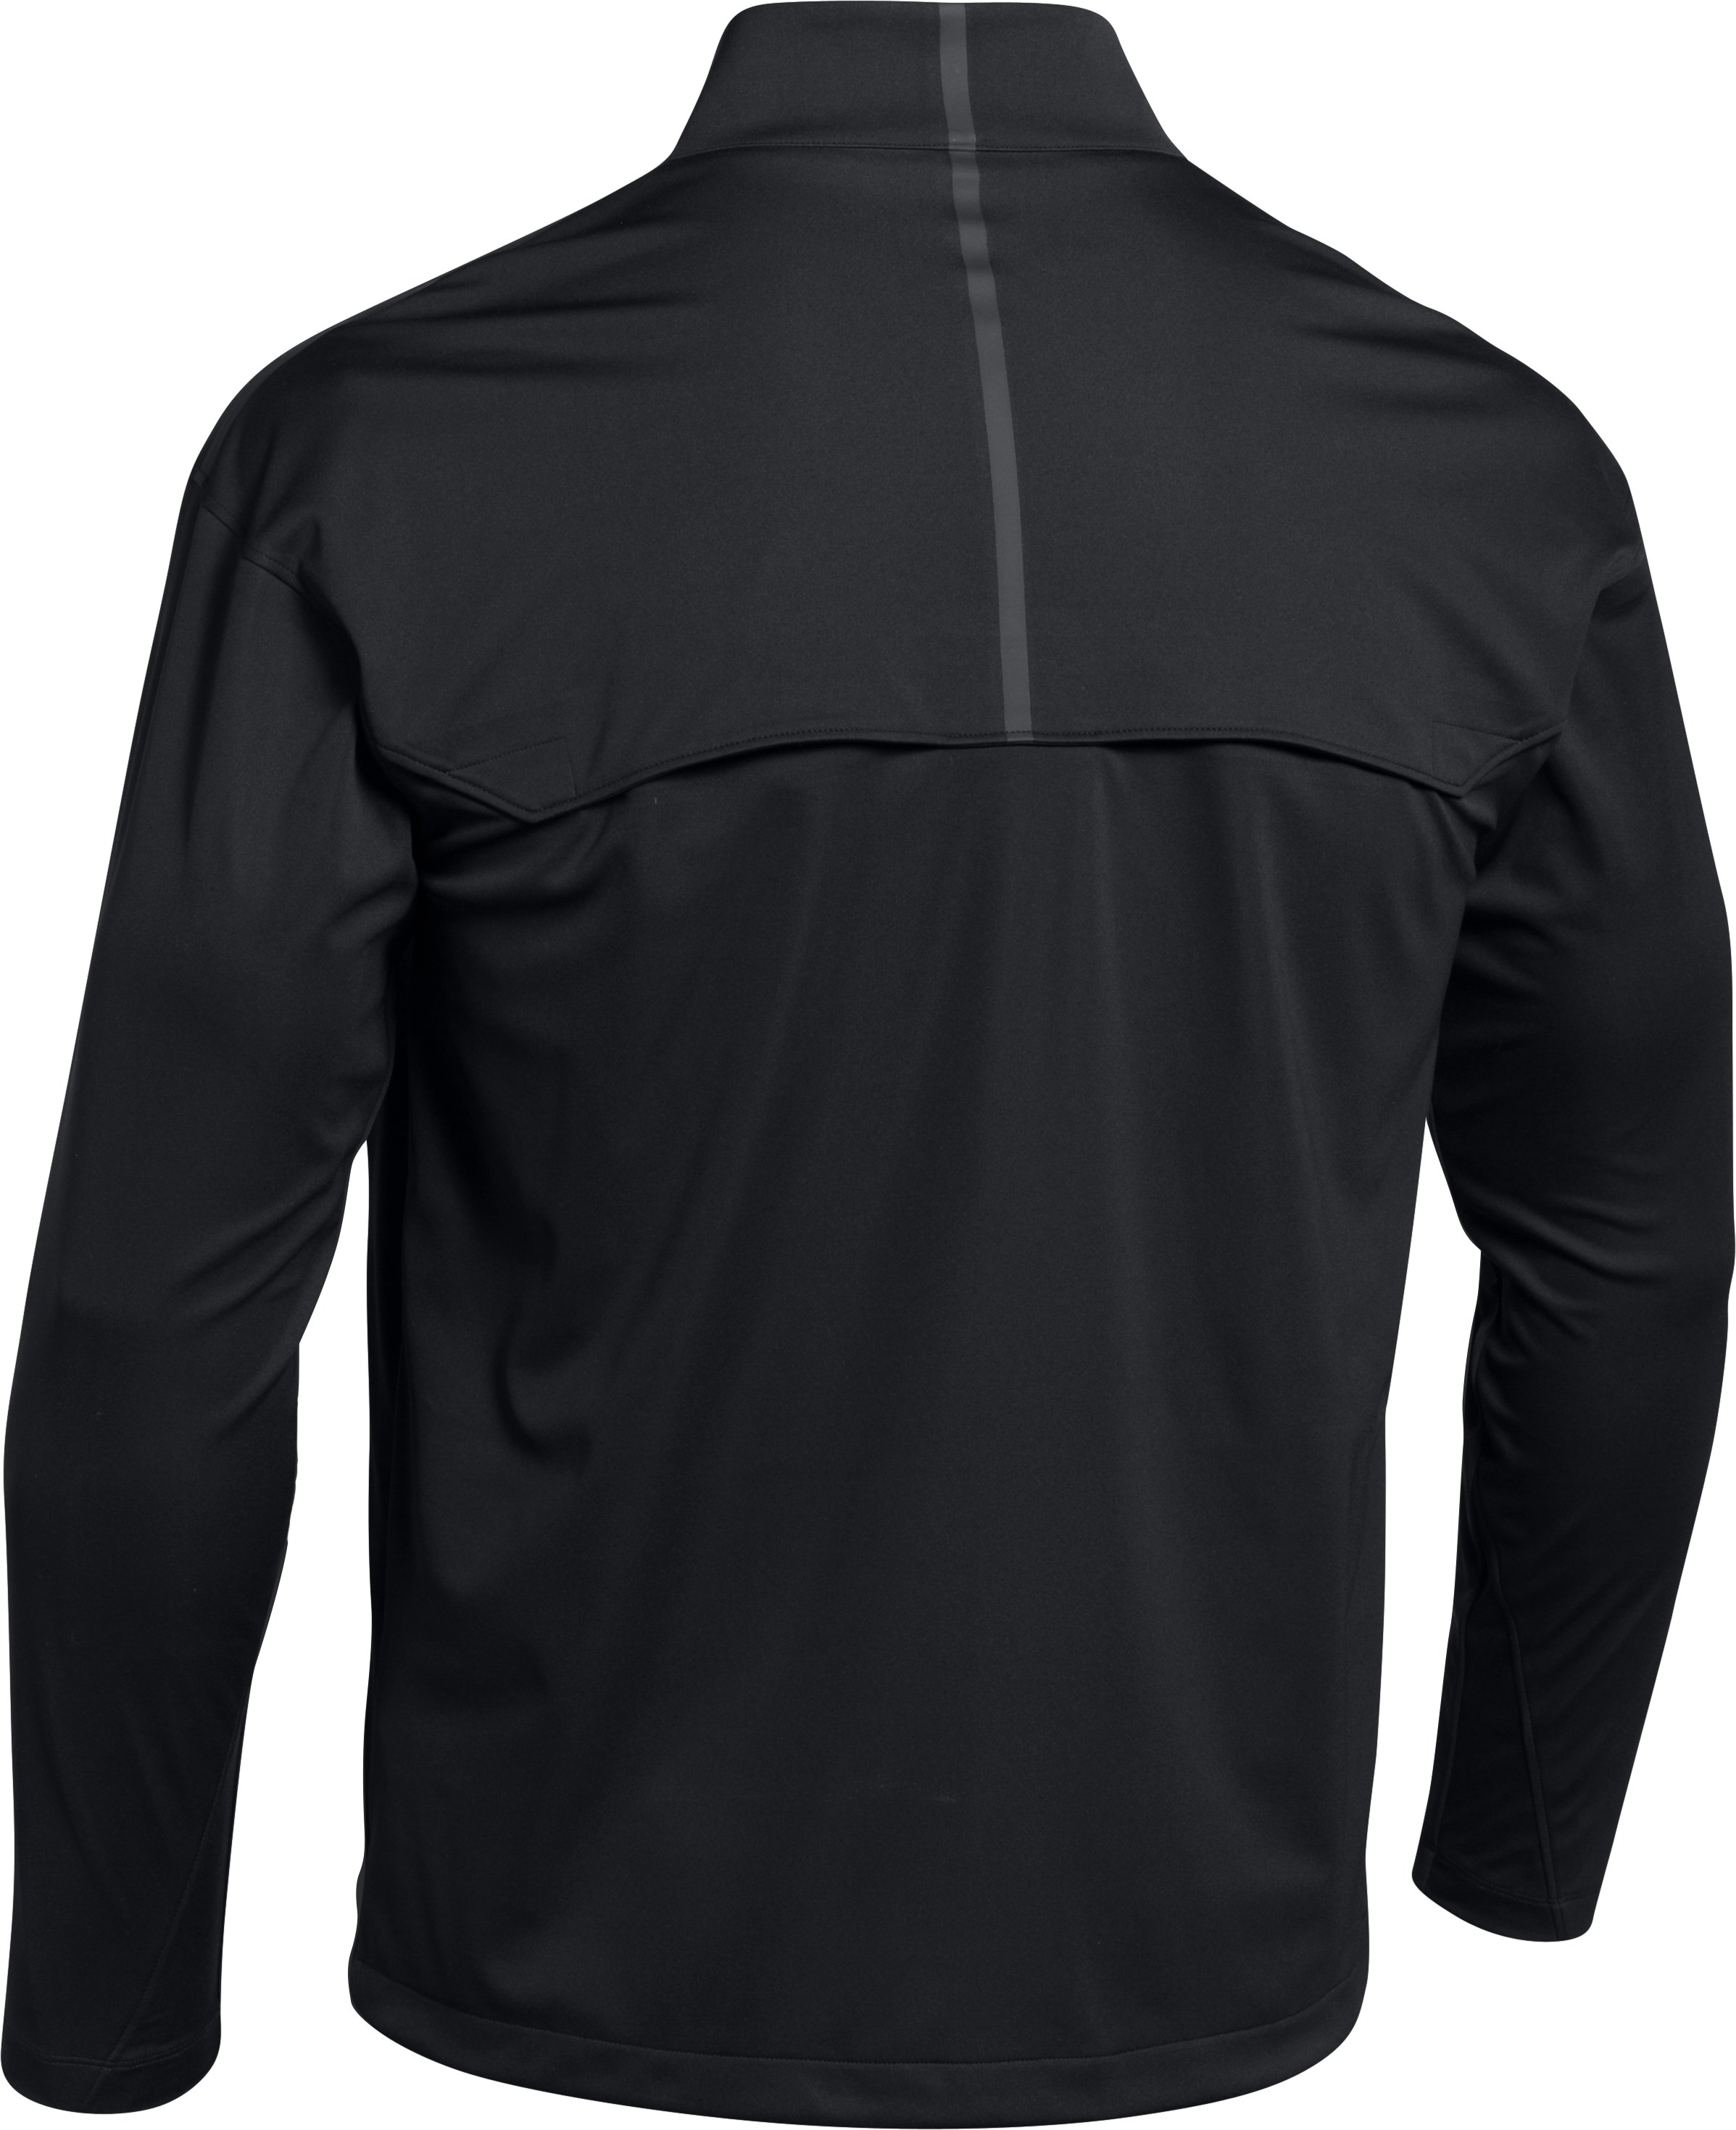 Men's WINDSTOPPER® Golf Jacket, Black ,